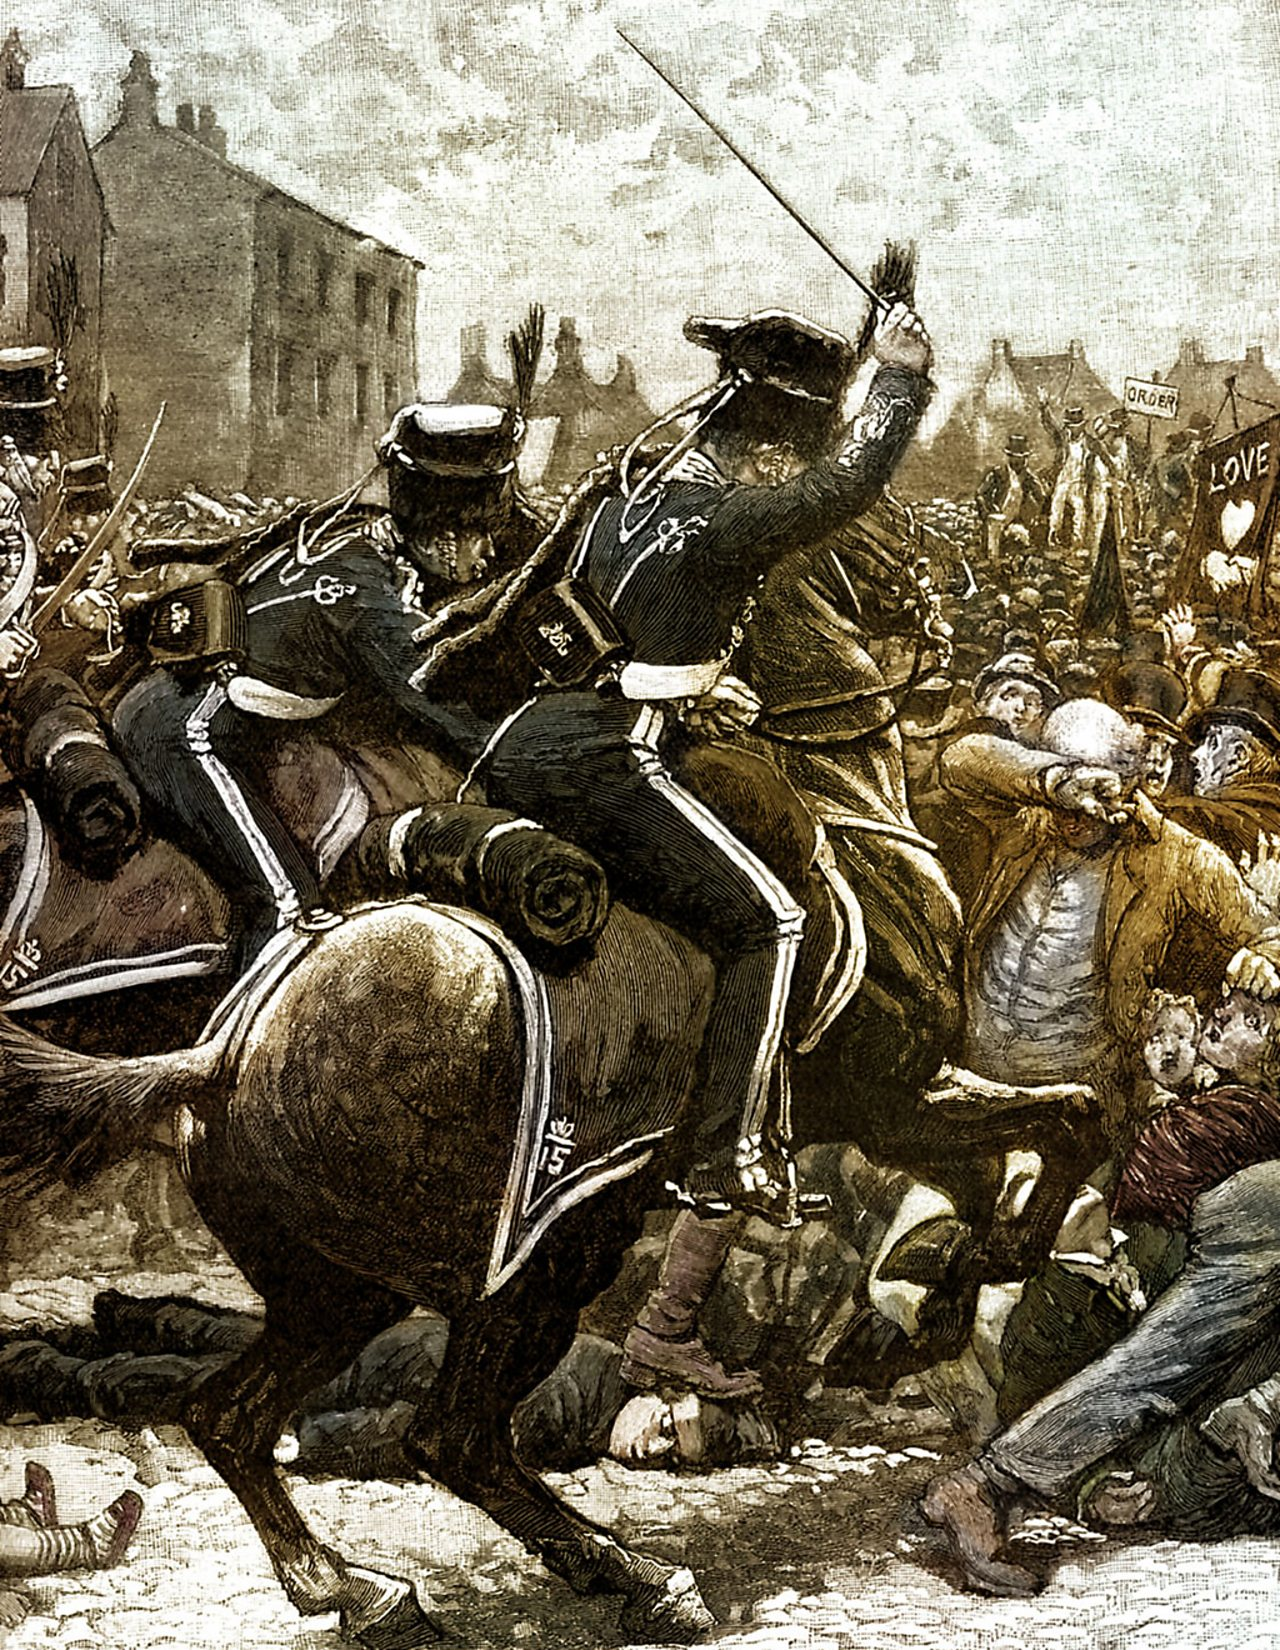 Many were killed and hundreds injured when cavalry charged the protesters at St Peter's Fields in Manchester.